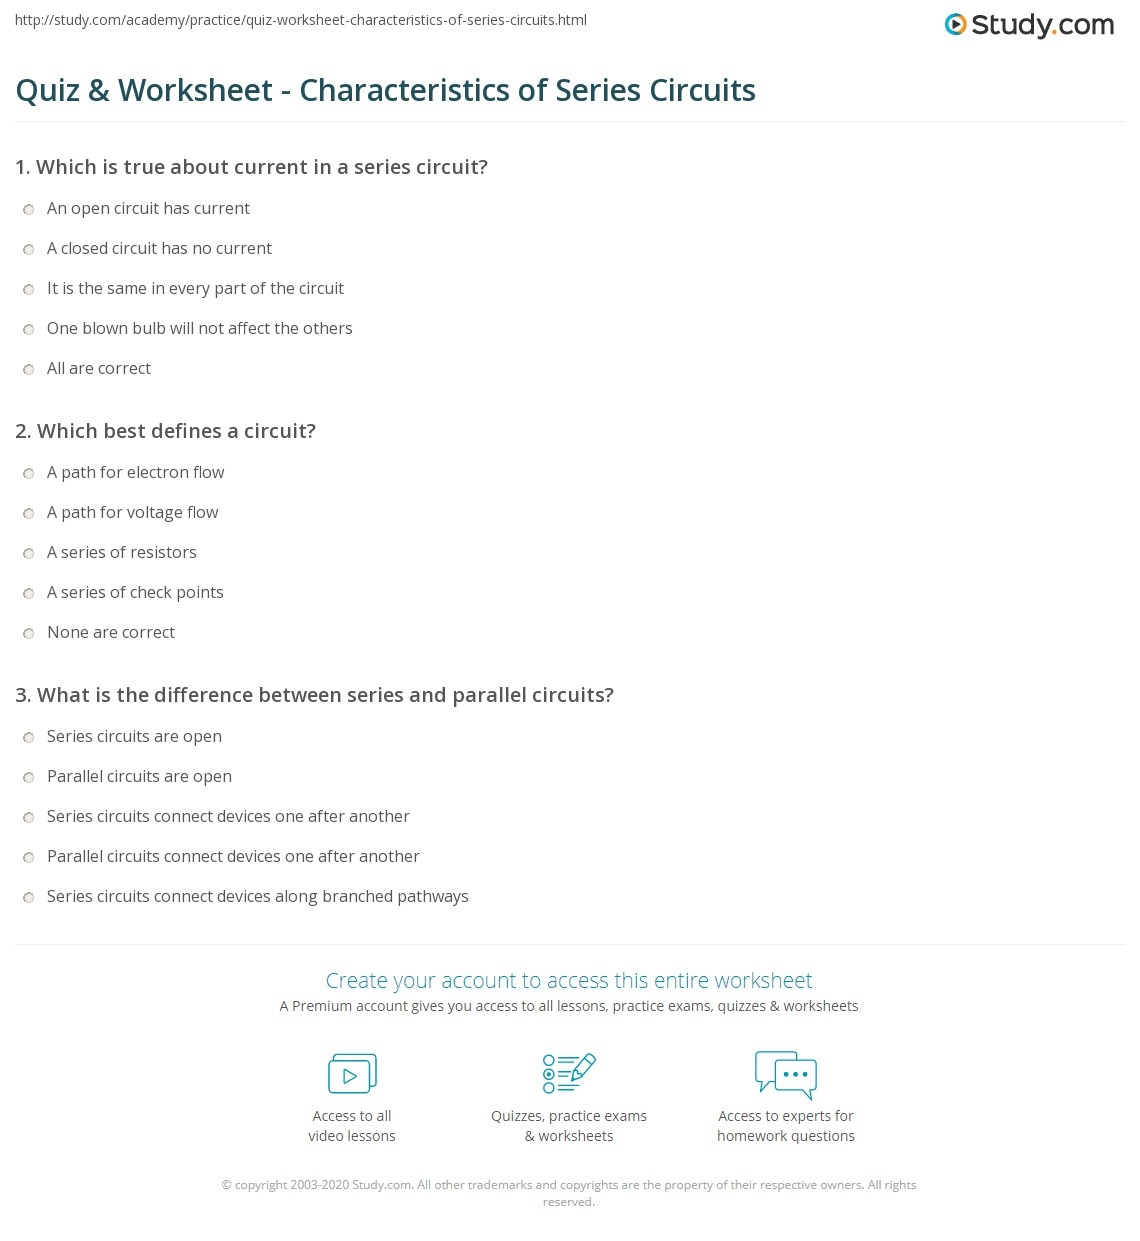 Uncategorized Series Circuits Worksheet quiz worksheet characteristics of series circuits study com print definition concepts worksheet